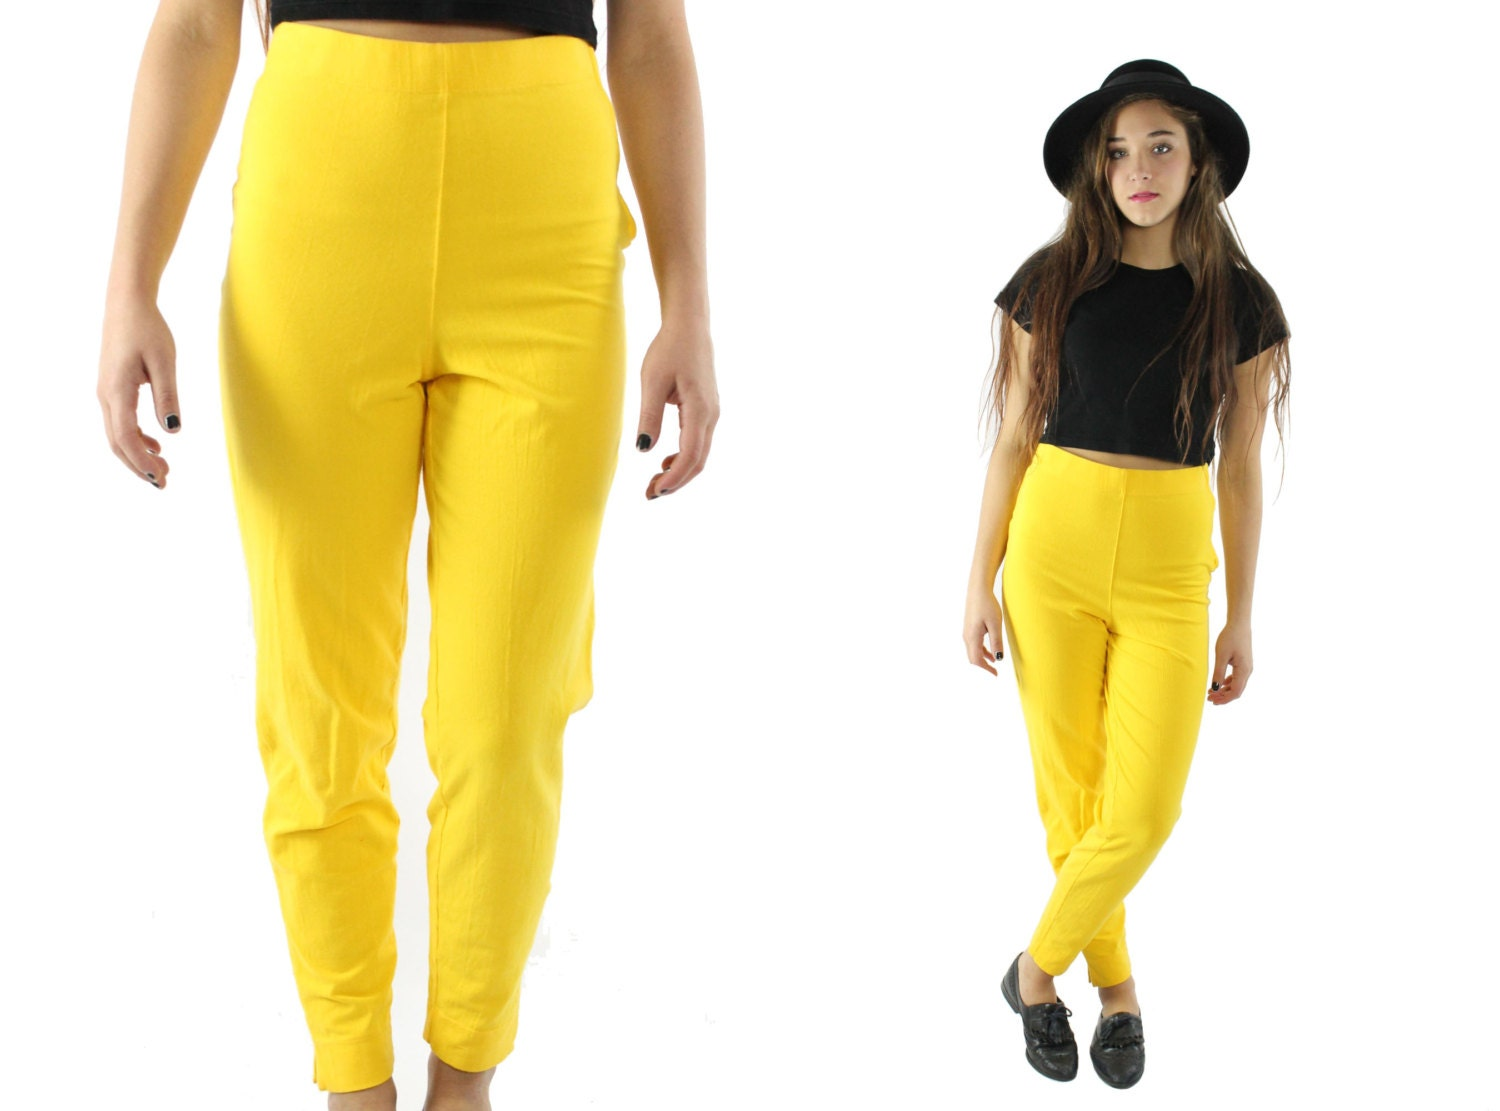 Vintage 90s High Waisted Pants Yellow Knit Leggings Cropped